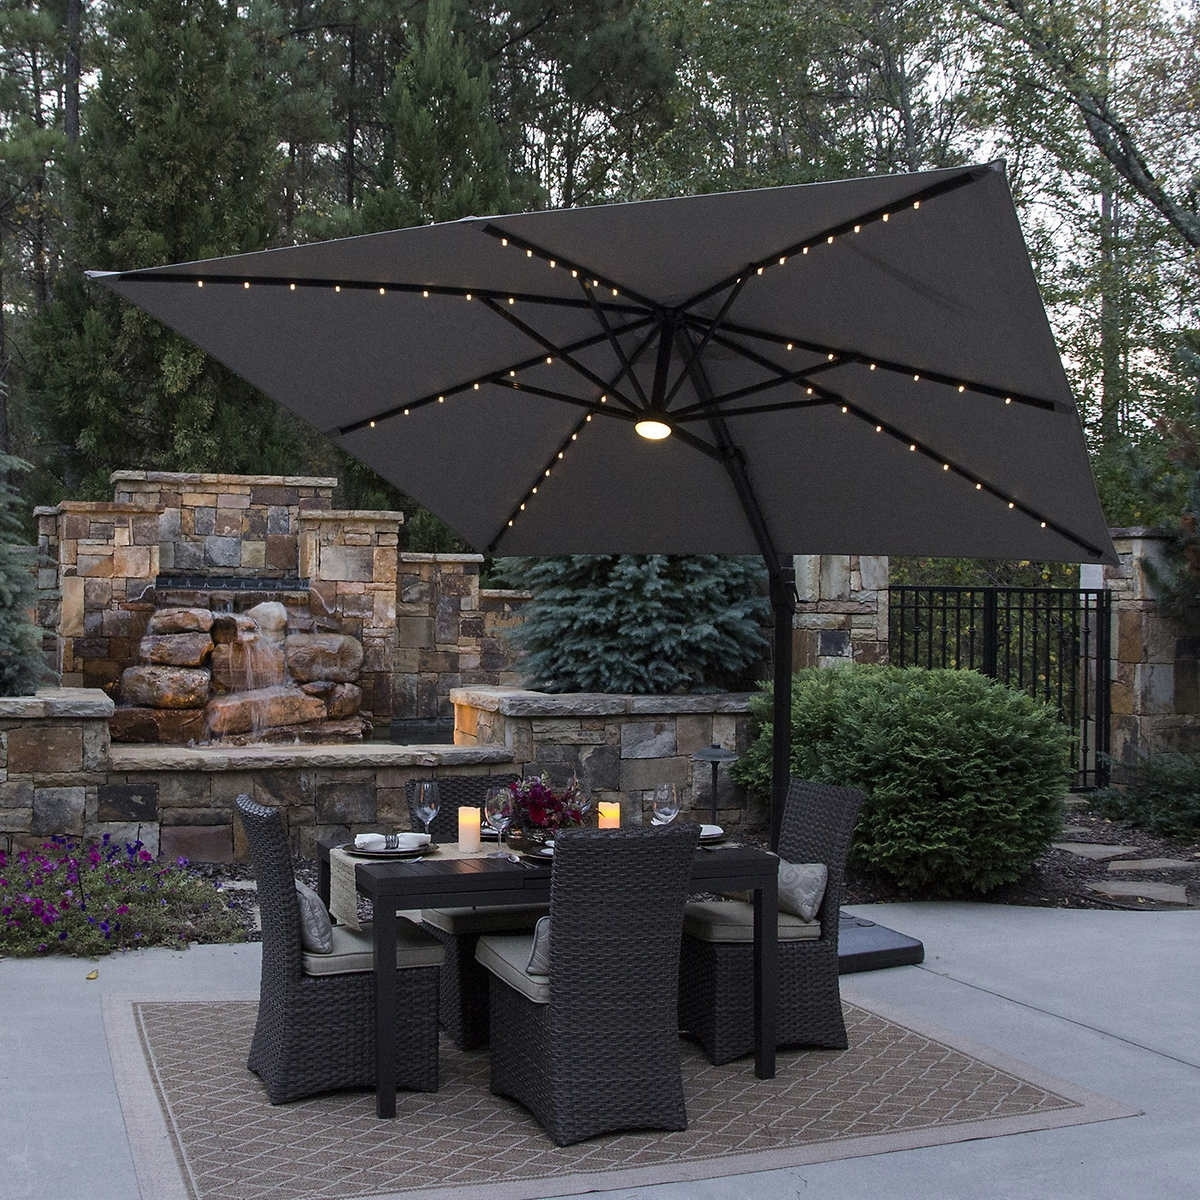 Costco Outdoor Patio Umbrellas Fresh Furniture Covers From Modern Regarding Most Popular Patio Umbrellas From Costco (View 3 of 20)